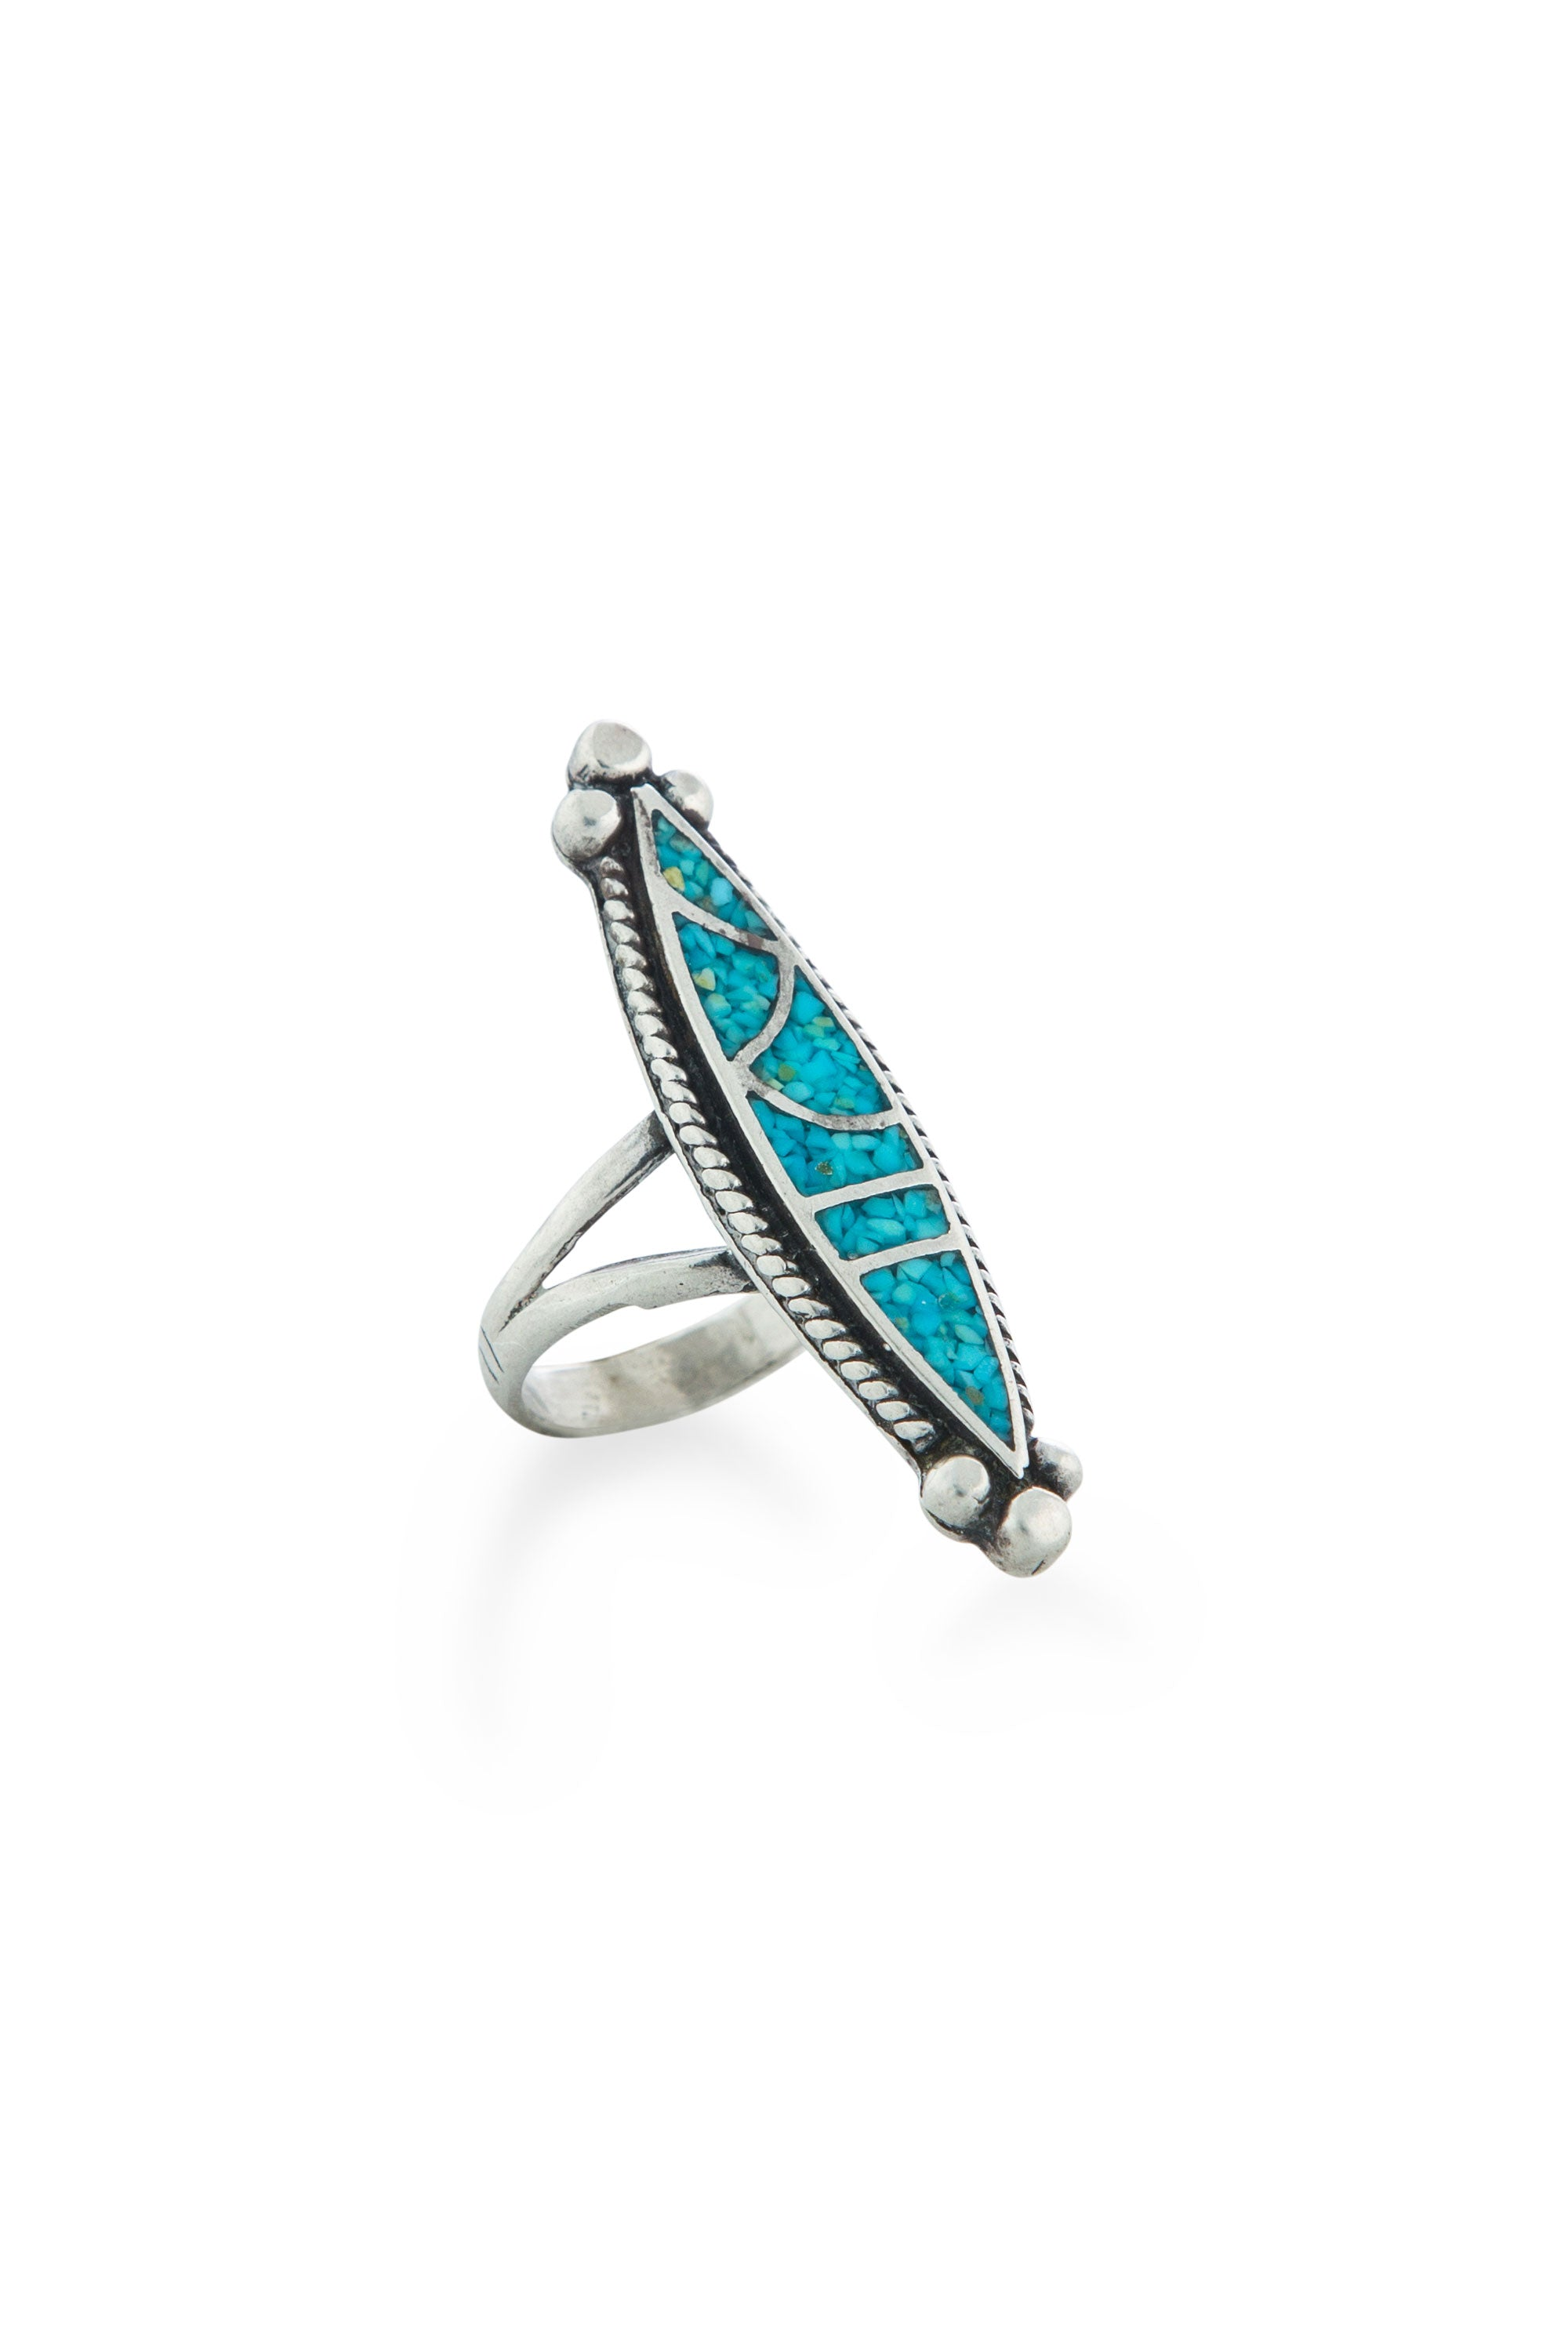 Ring, Inlay, Turquoise & Sterling Silver, Vintage, 588